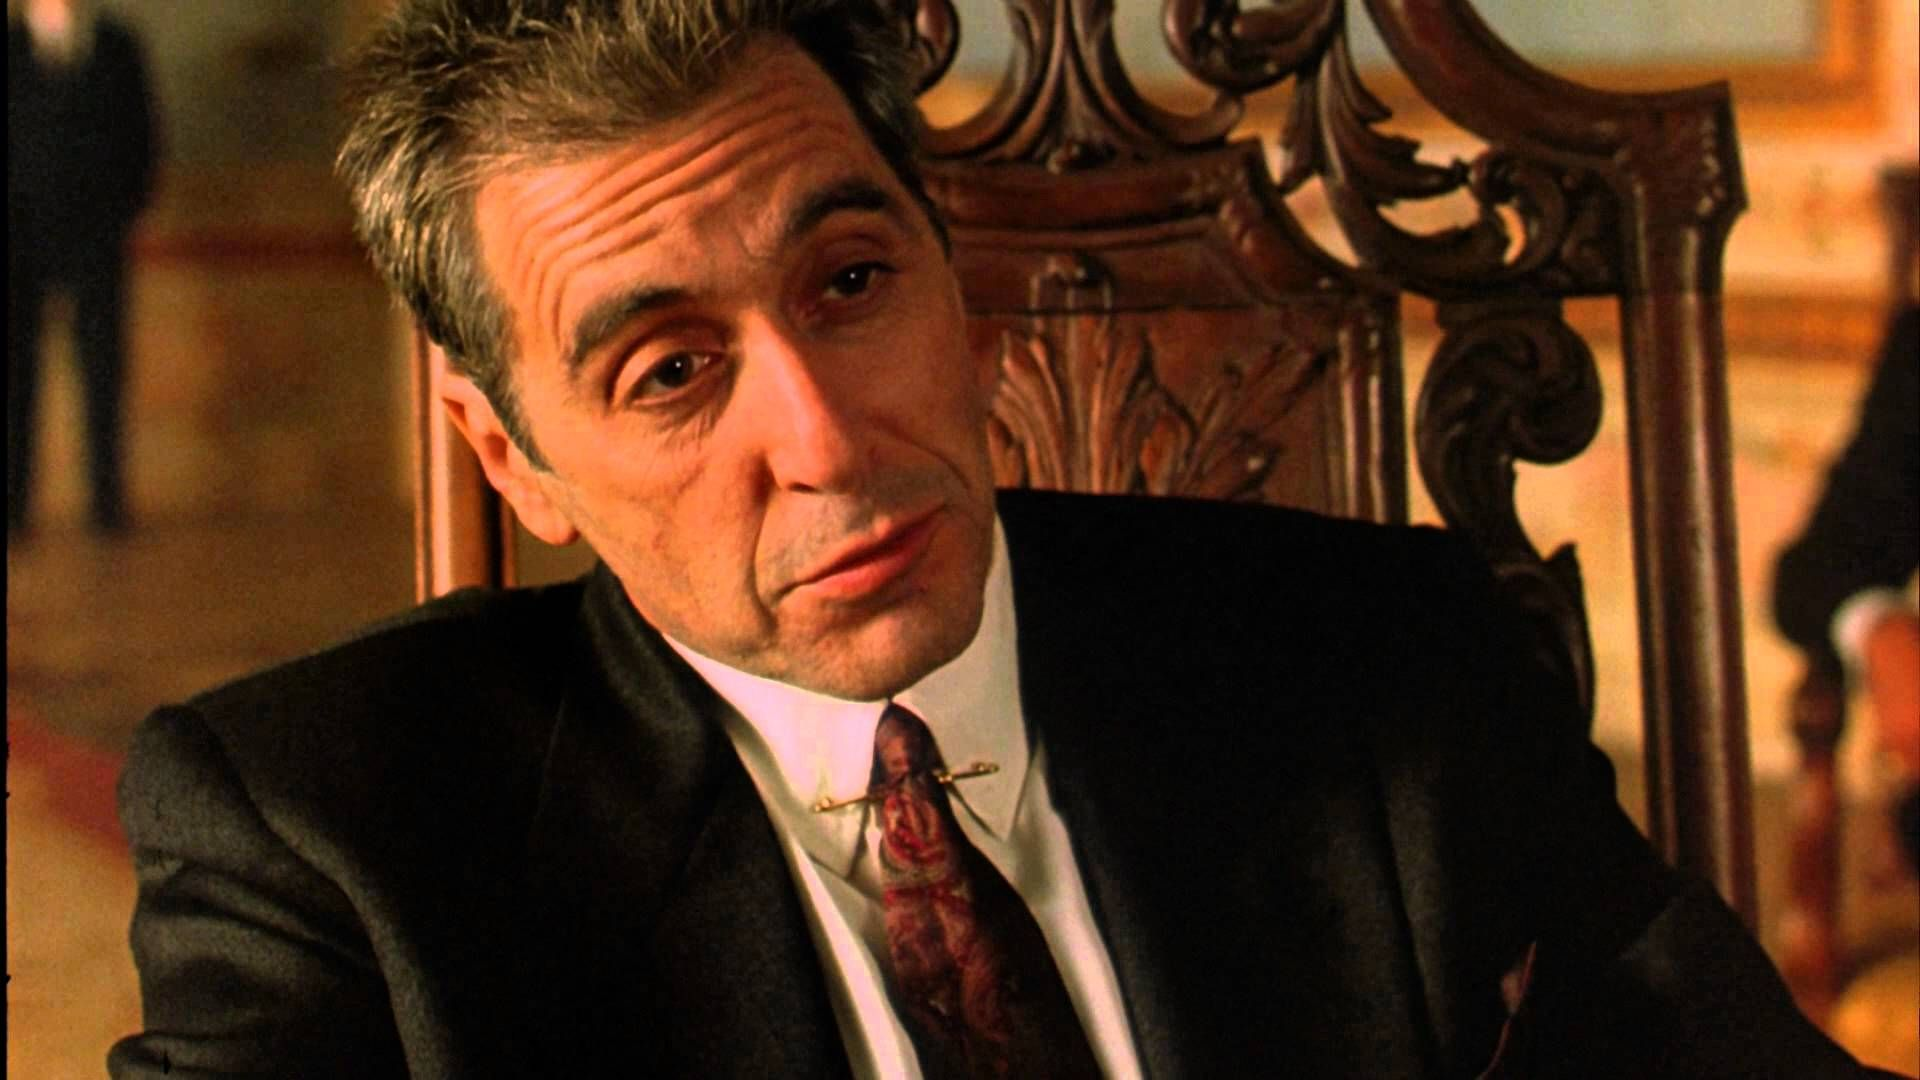 The Godfather Part III - Trailer | Movie Scenes & Their Music ...